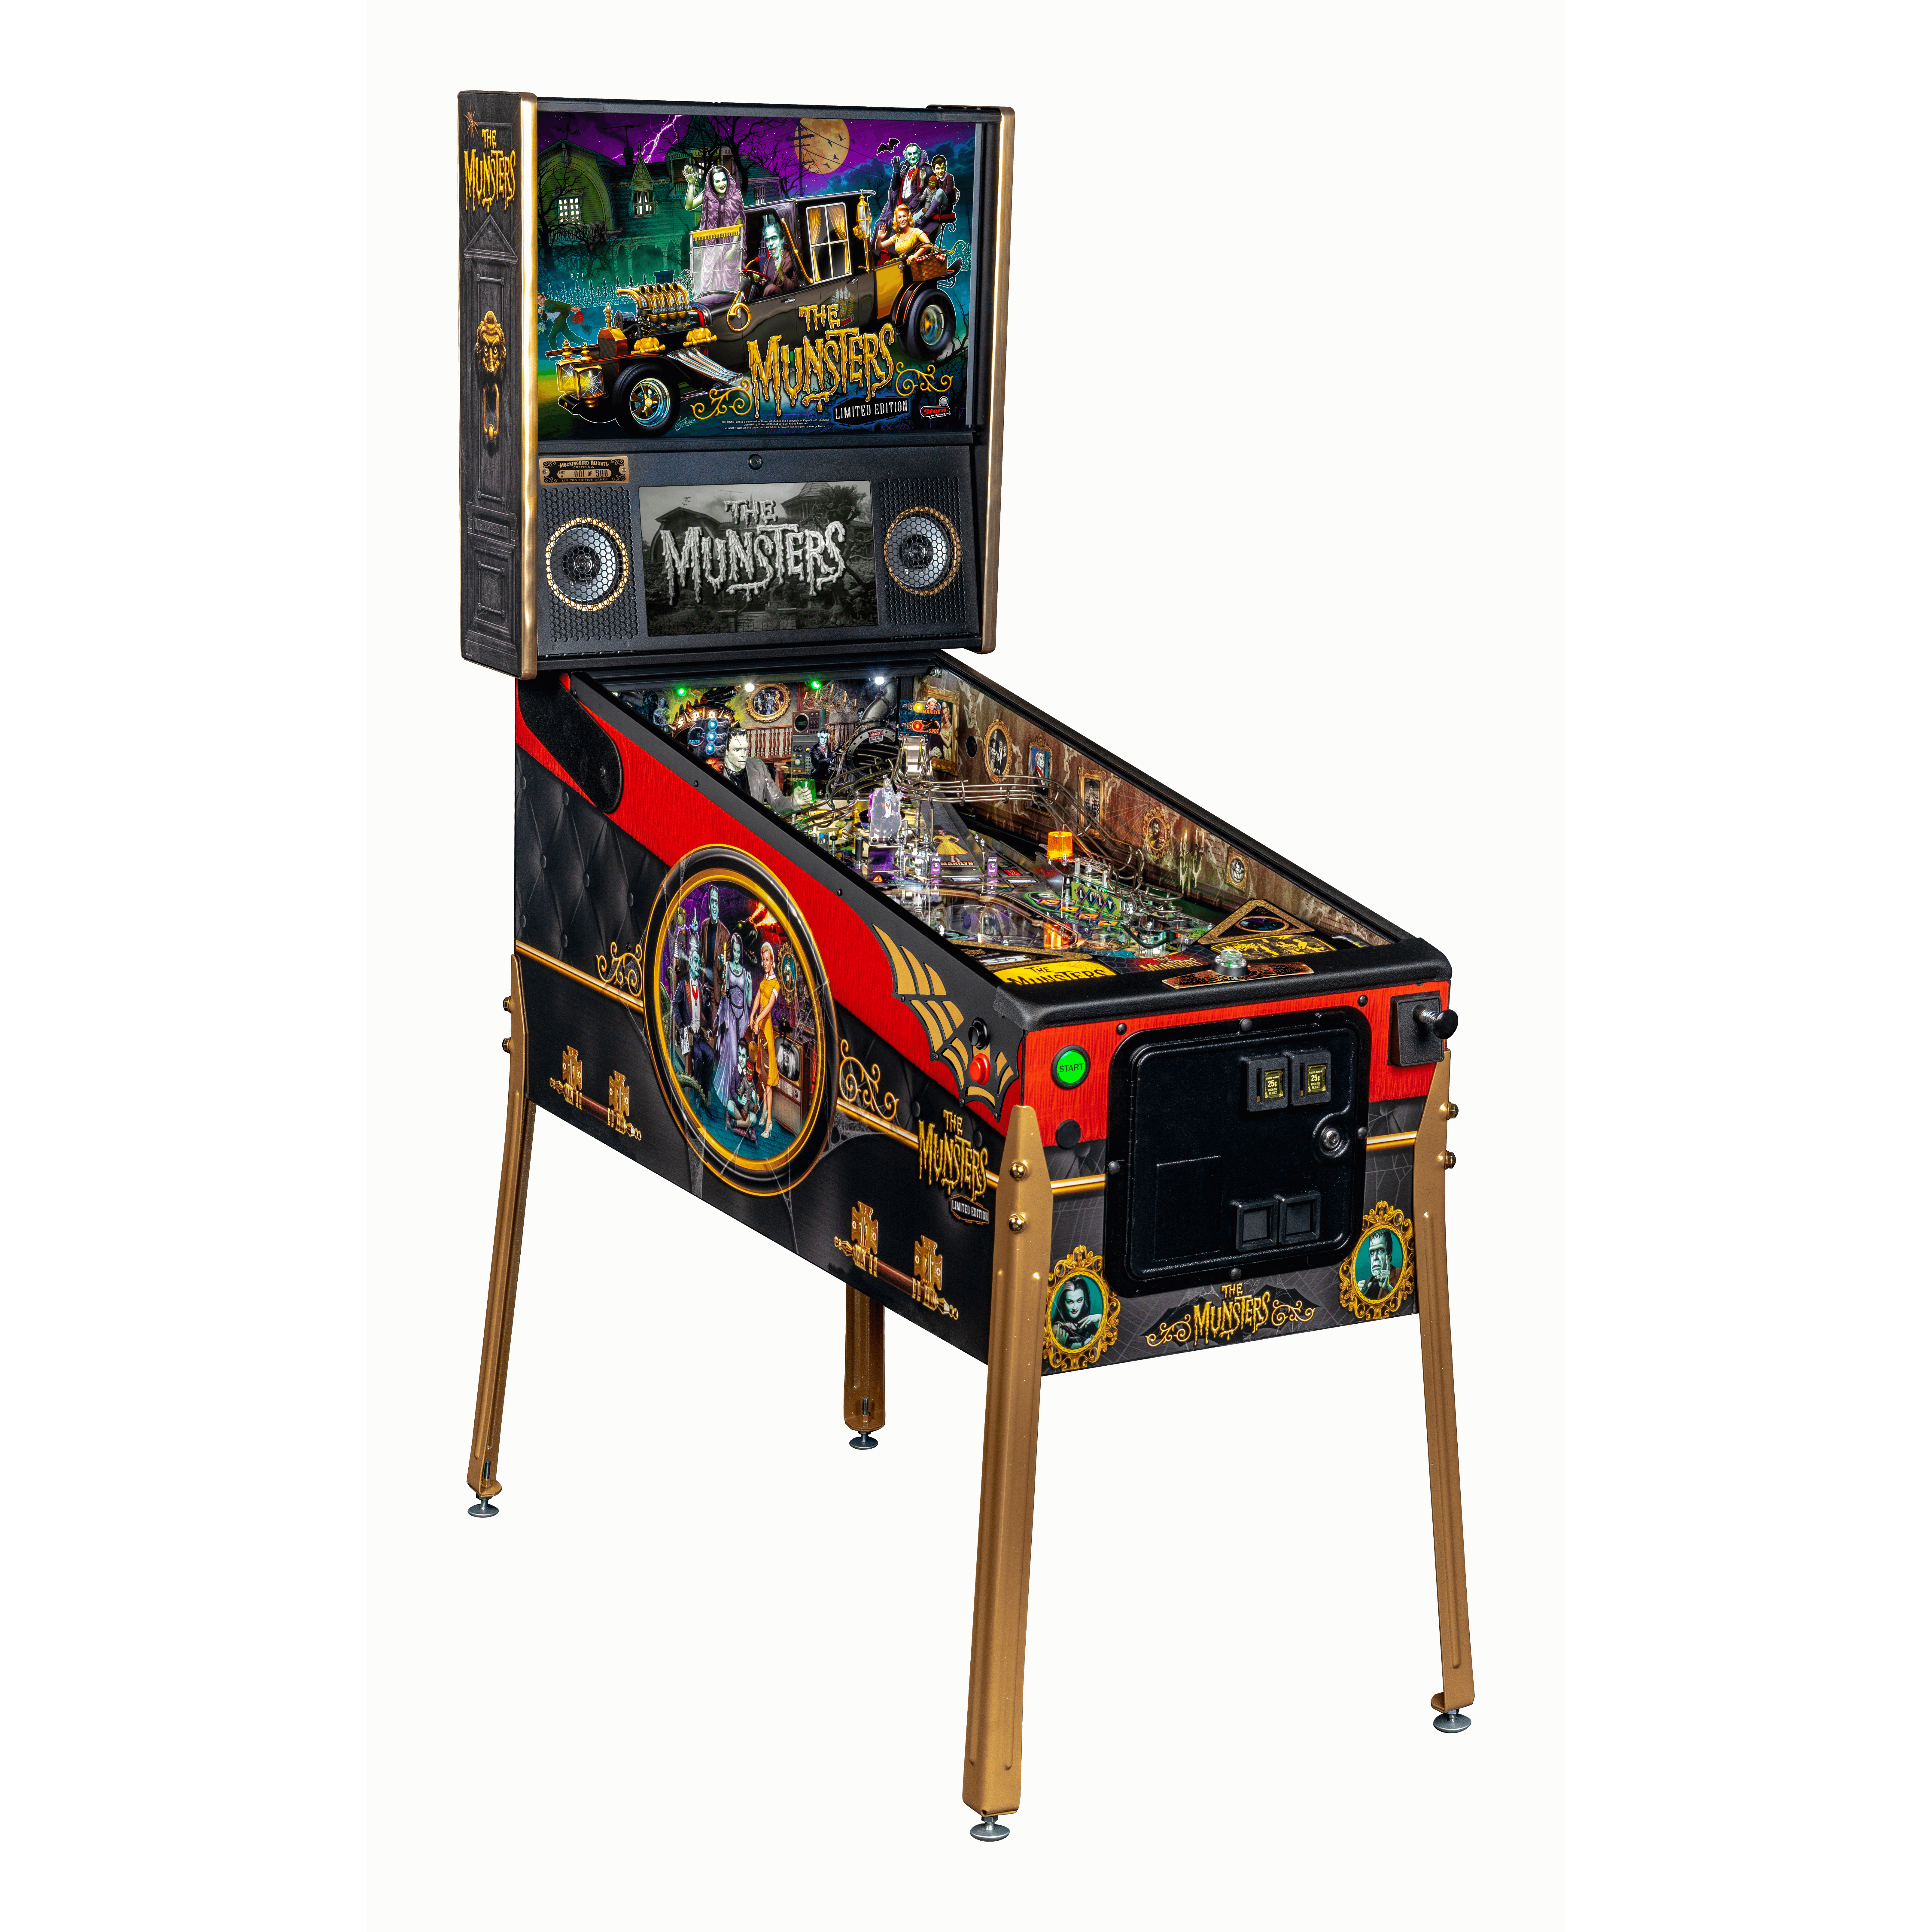 The Munsters Limited Edition Pinball Machine by Stern